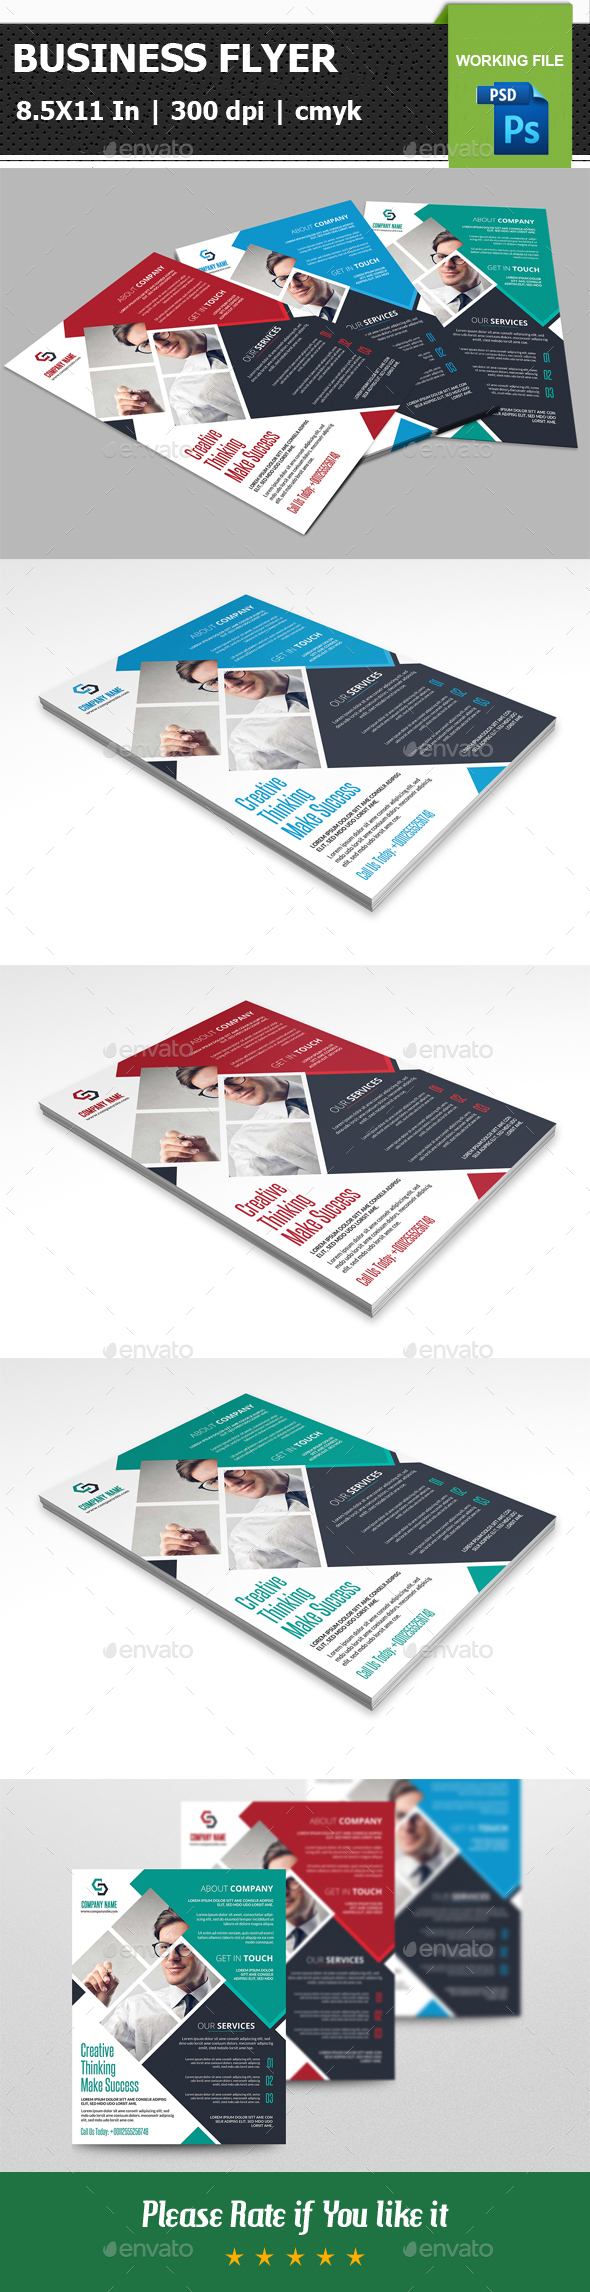 Business Flyer V08 - Corporate Flyers